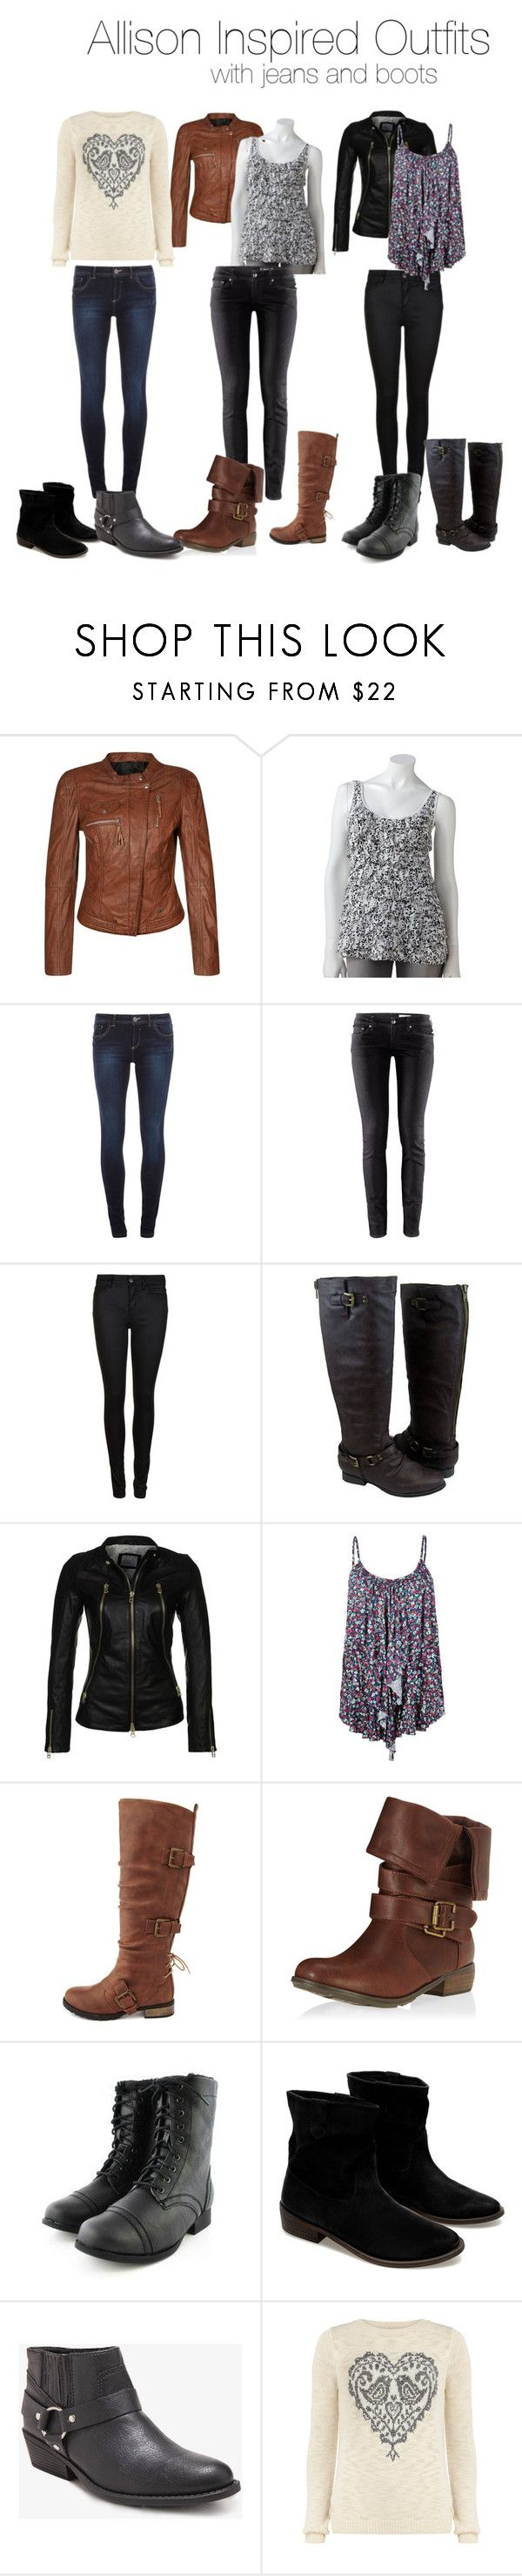 """Allison Inspired Outfits With Jeans and Boots"" by veterization ❤ liked on Polyvore featuring Freaky Nation, Apt. 9, Dorothy Perkins, H&M, Gestuz, Addition by SLY 010, Full Tilt, Charlotte Russe, Zara and Forever 21"